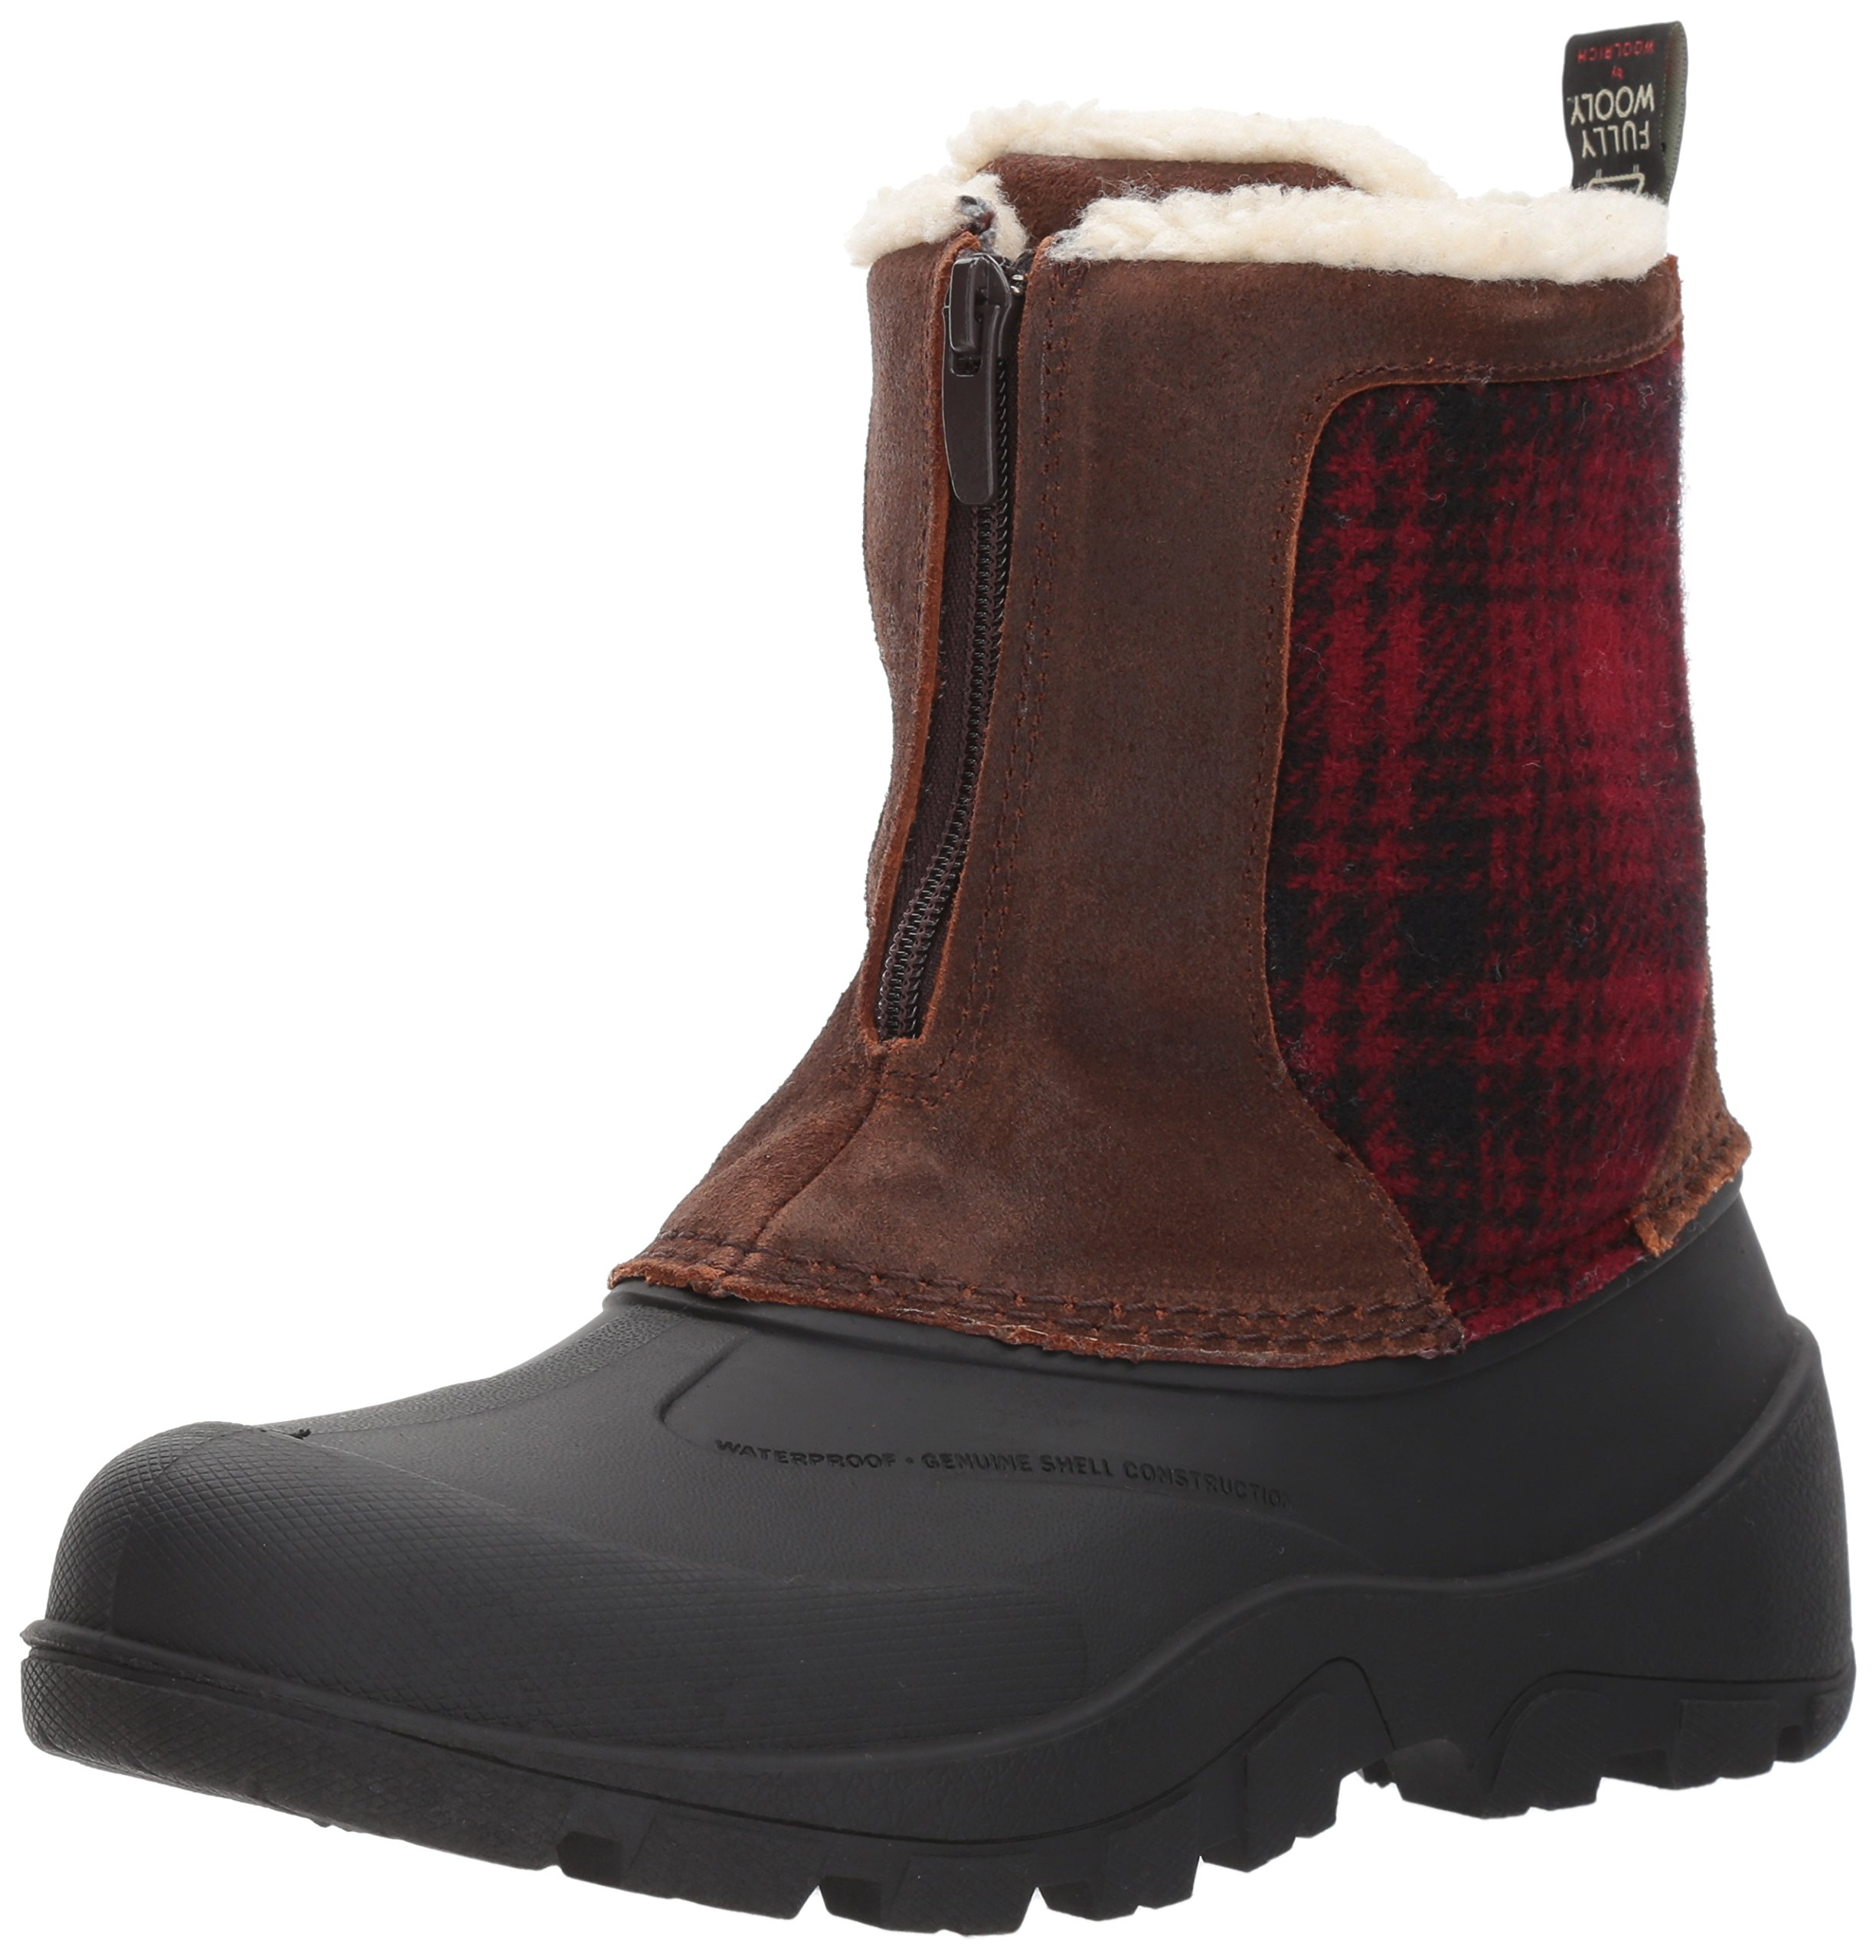 Woolrich Women's Fw Icecat Snow Boot, Coconut/Red Hunting Plaid, 8 M US